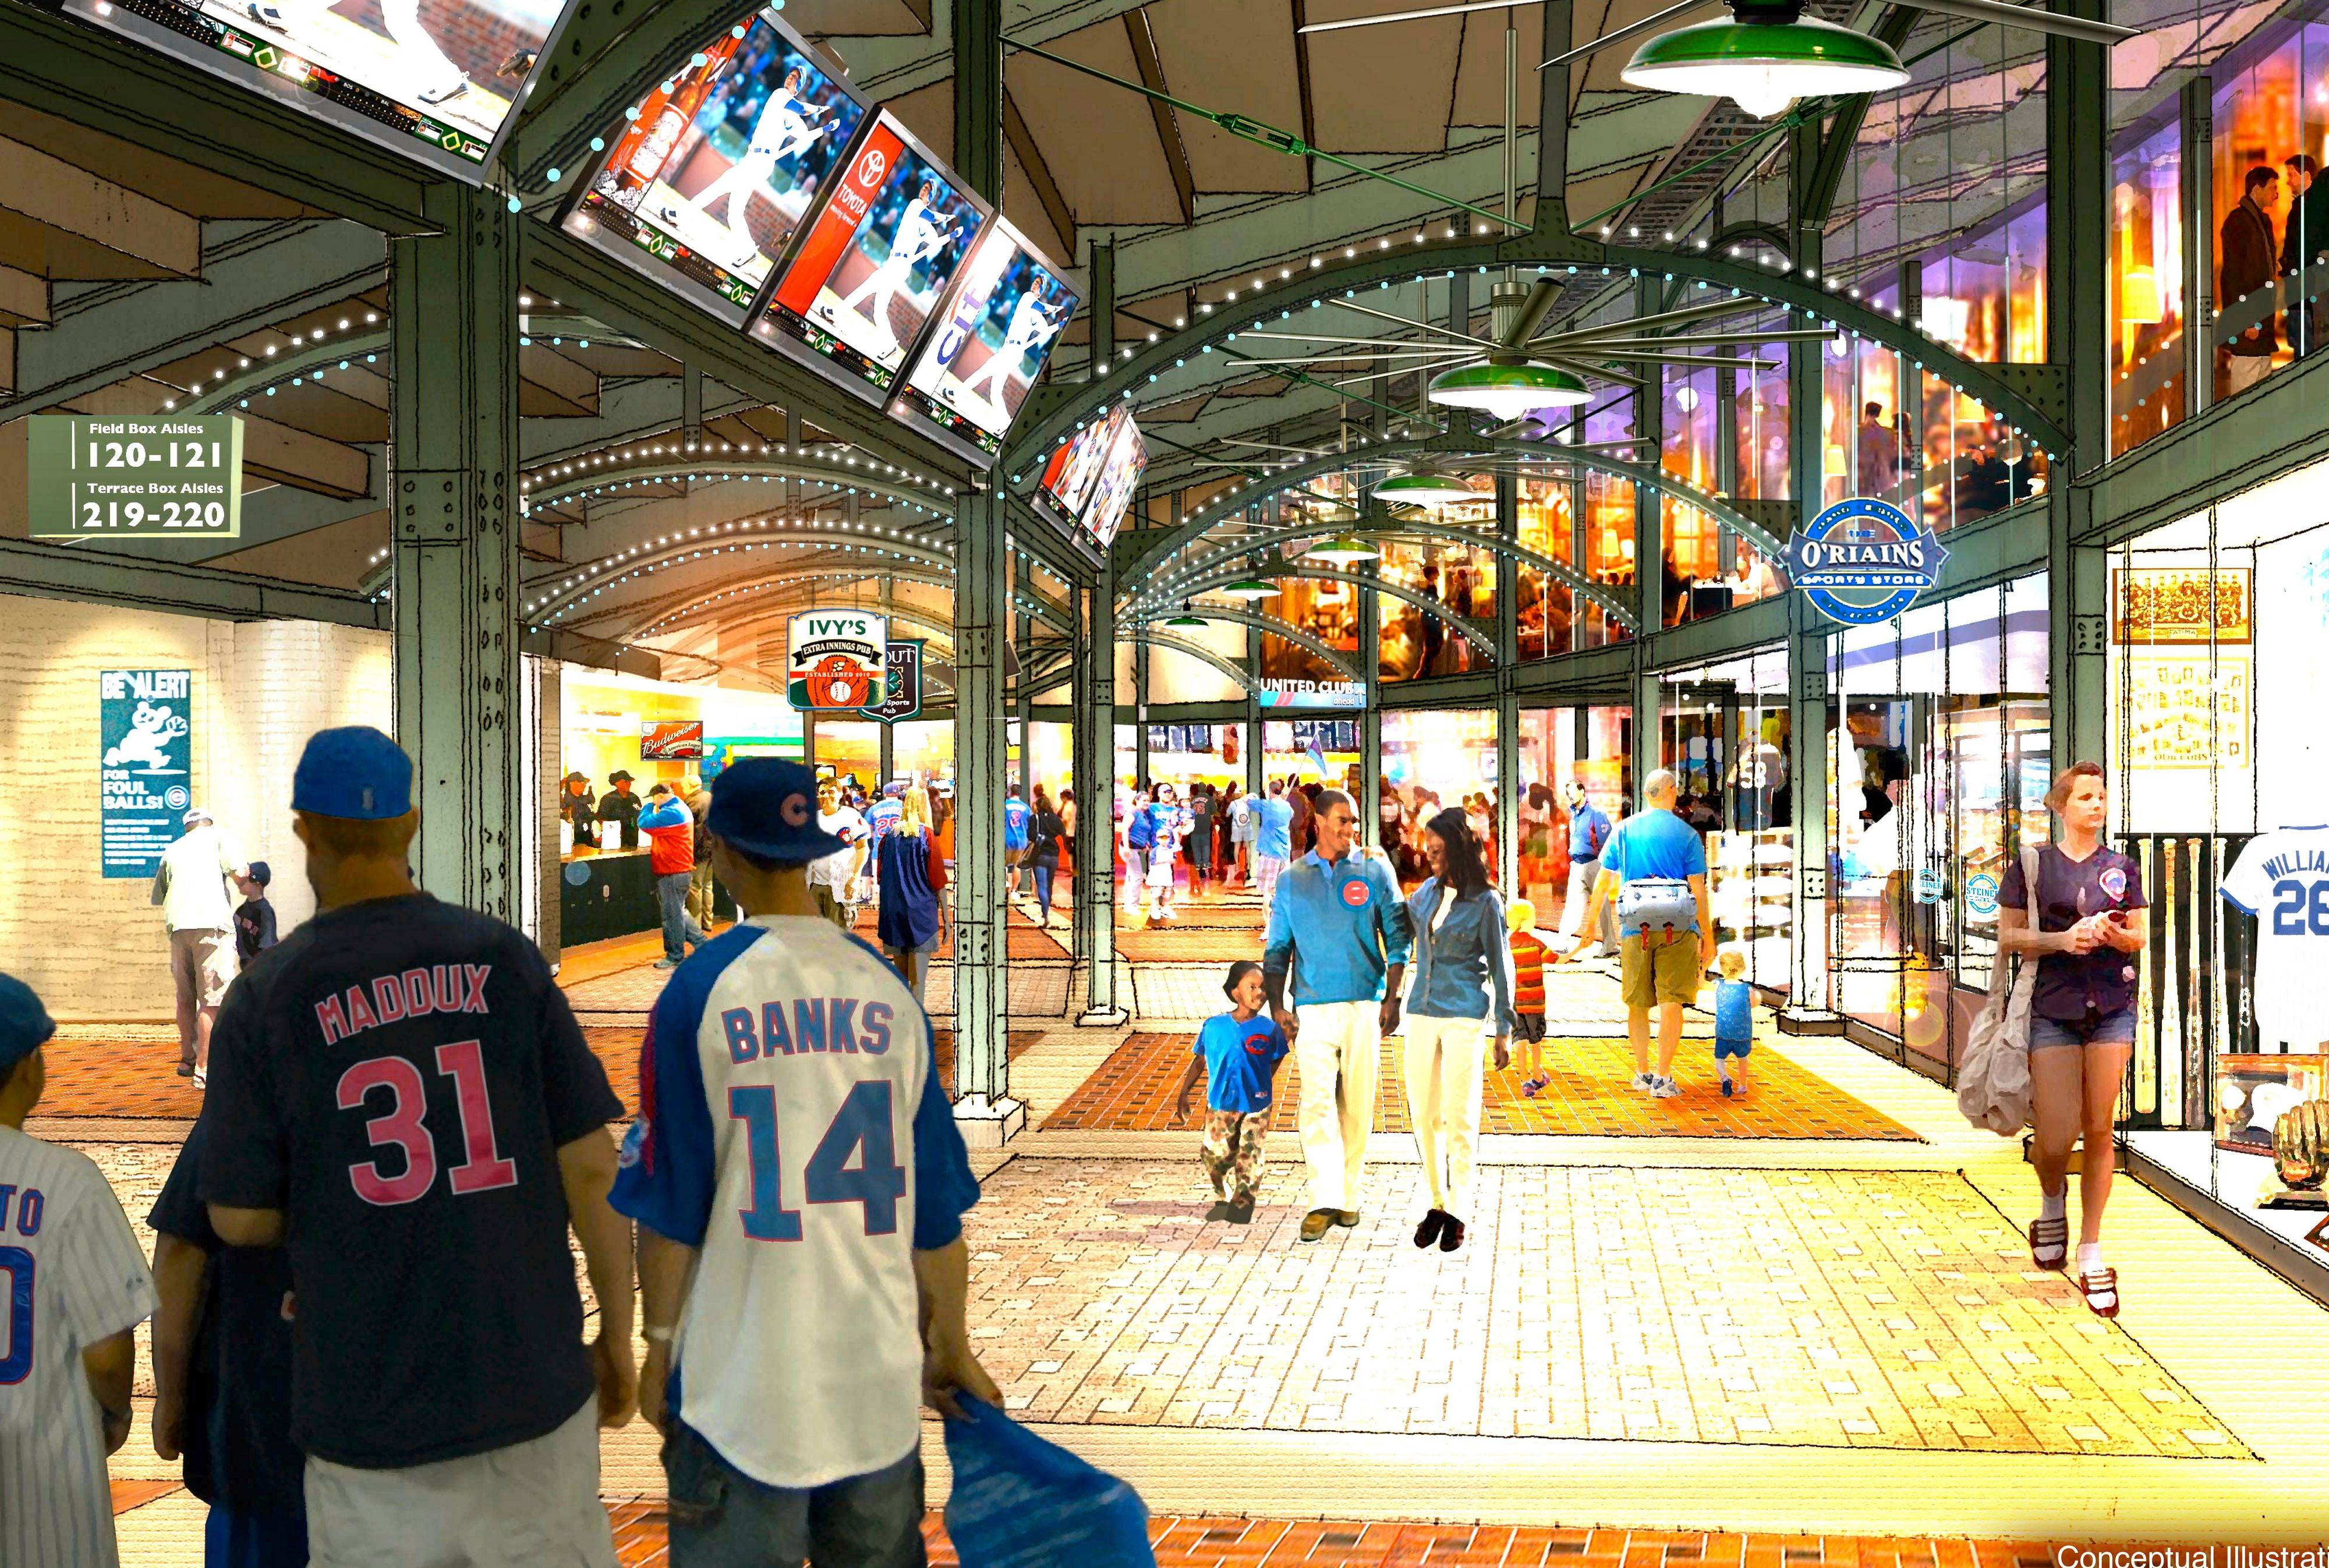 This is what the outside concourse could look like under the Cubs' five-year renovation plan being proposed for Wrigley Field.